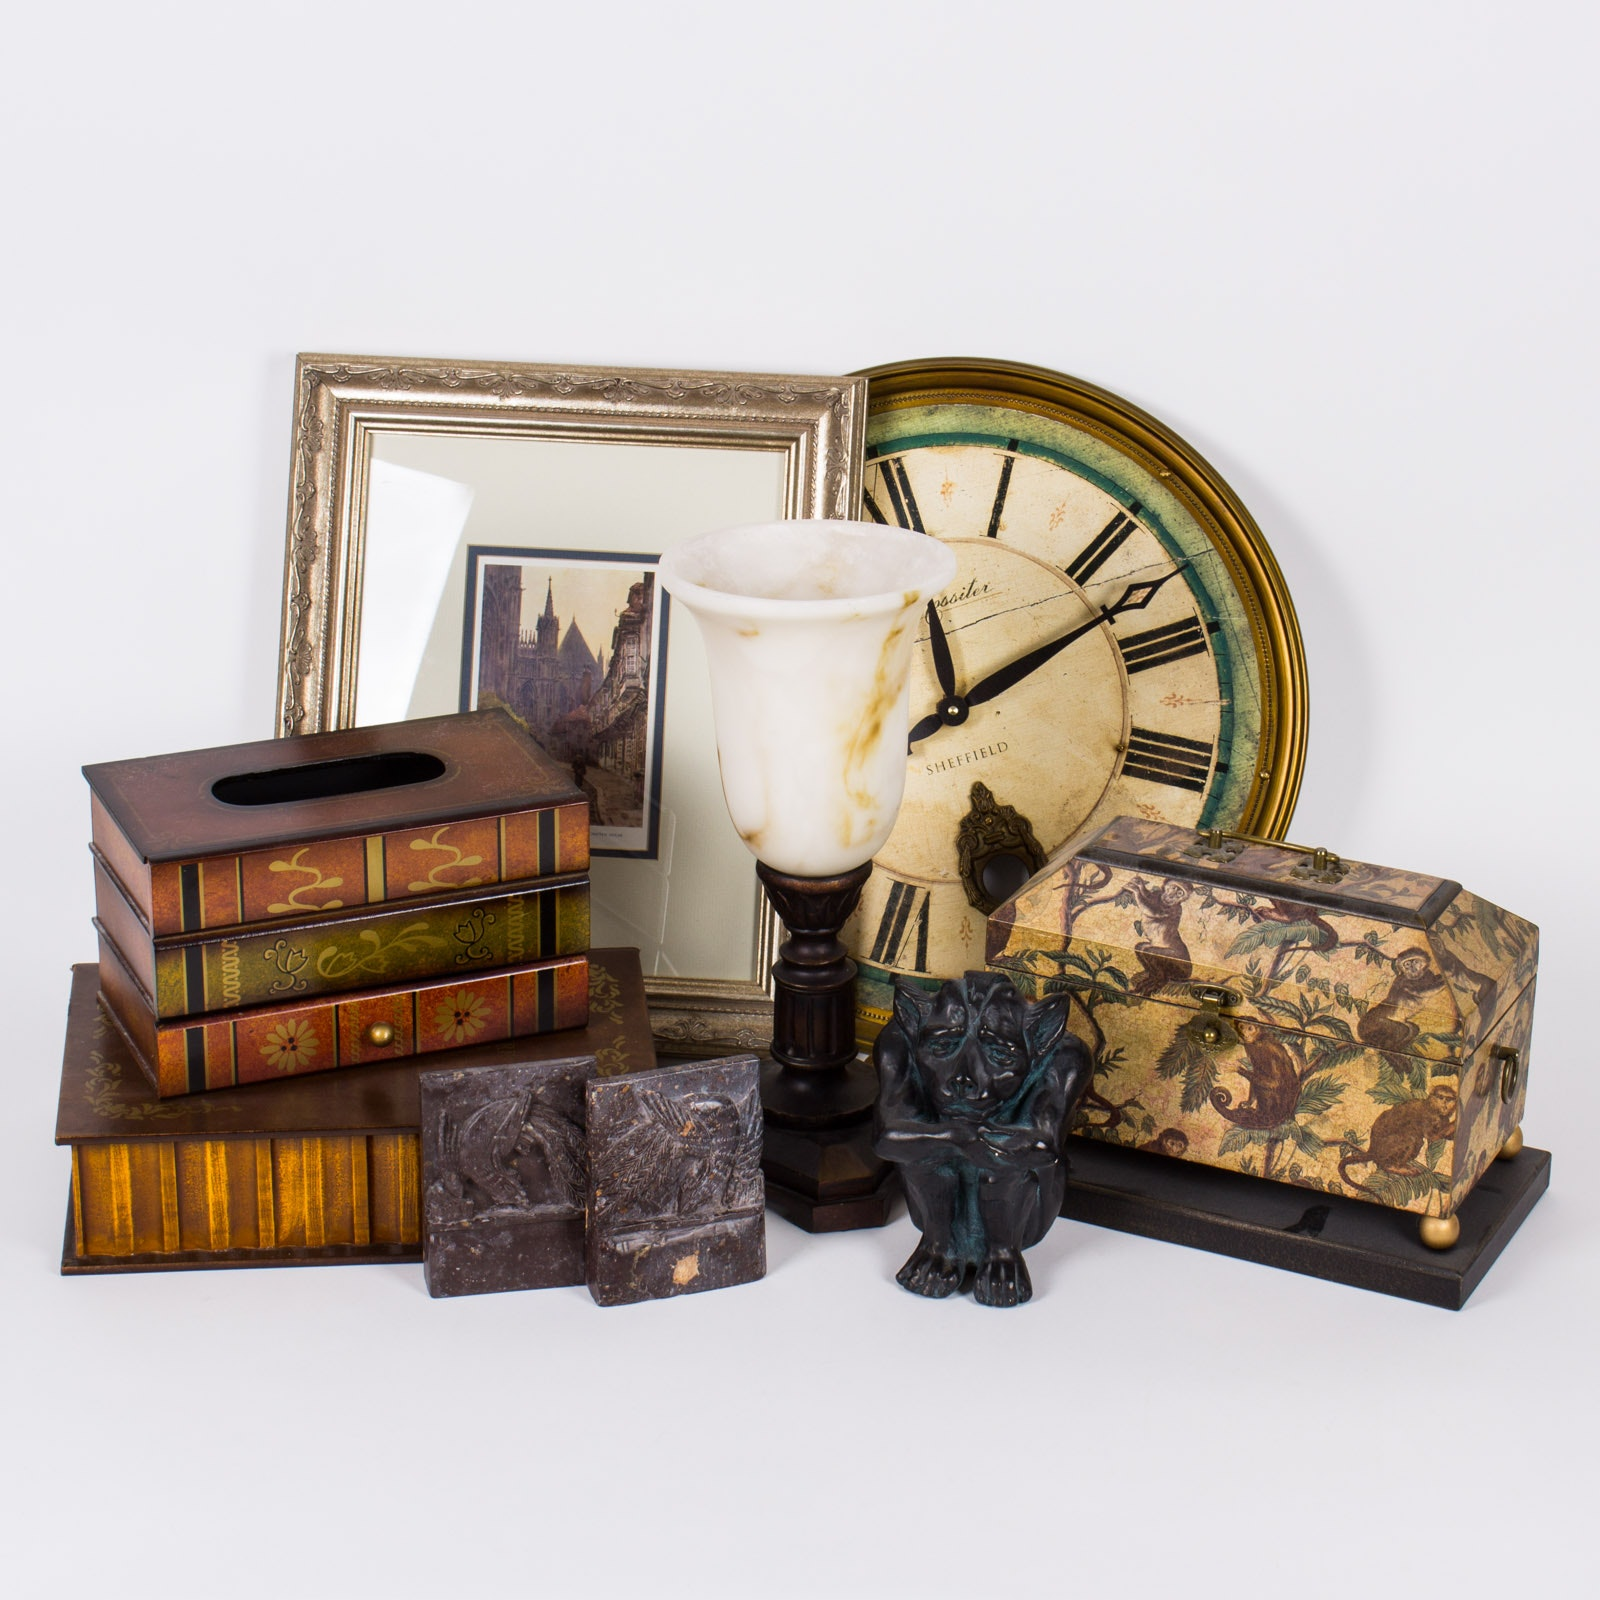 Collection of Library Home Decor